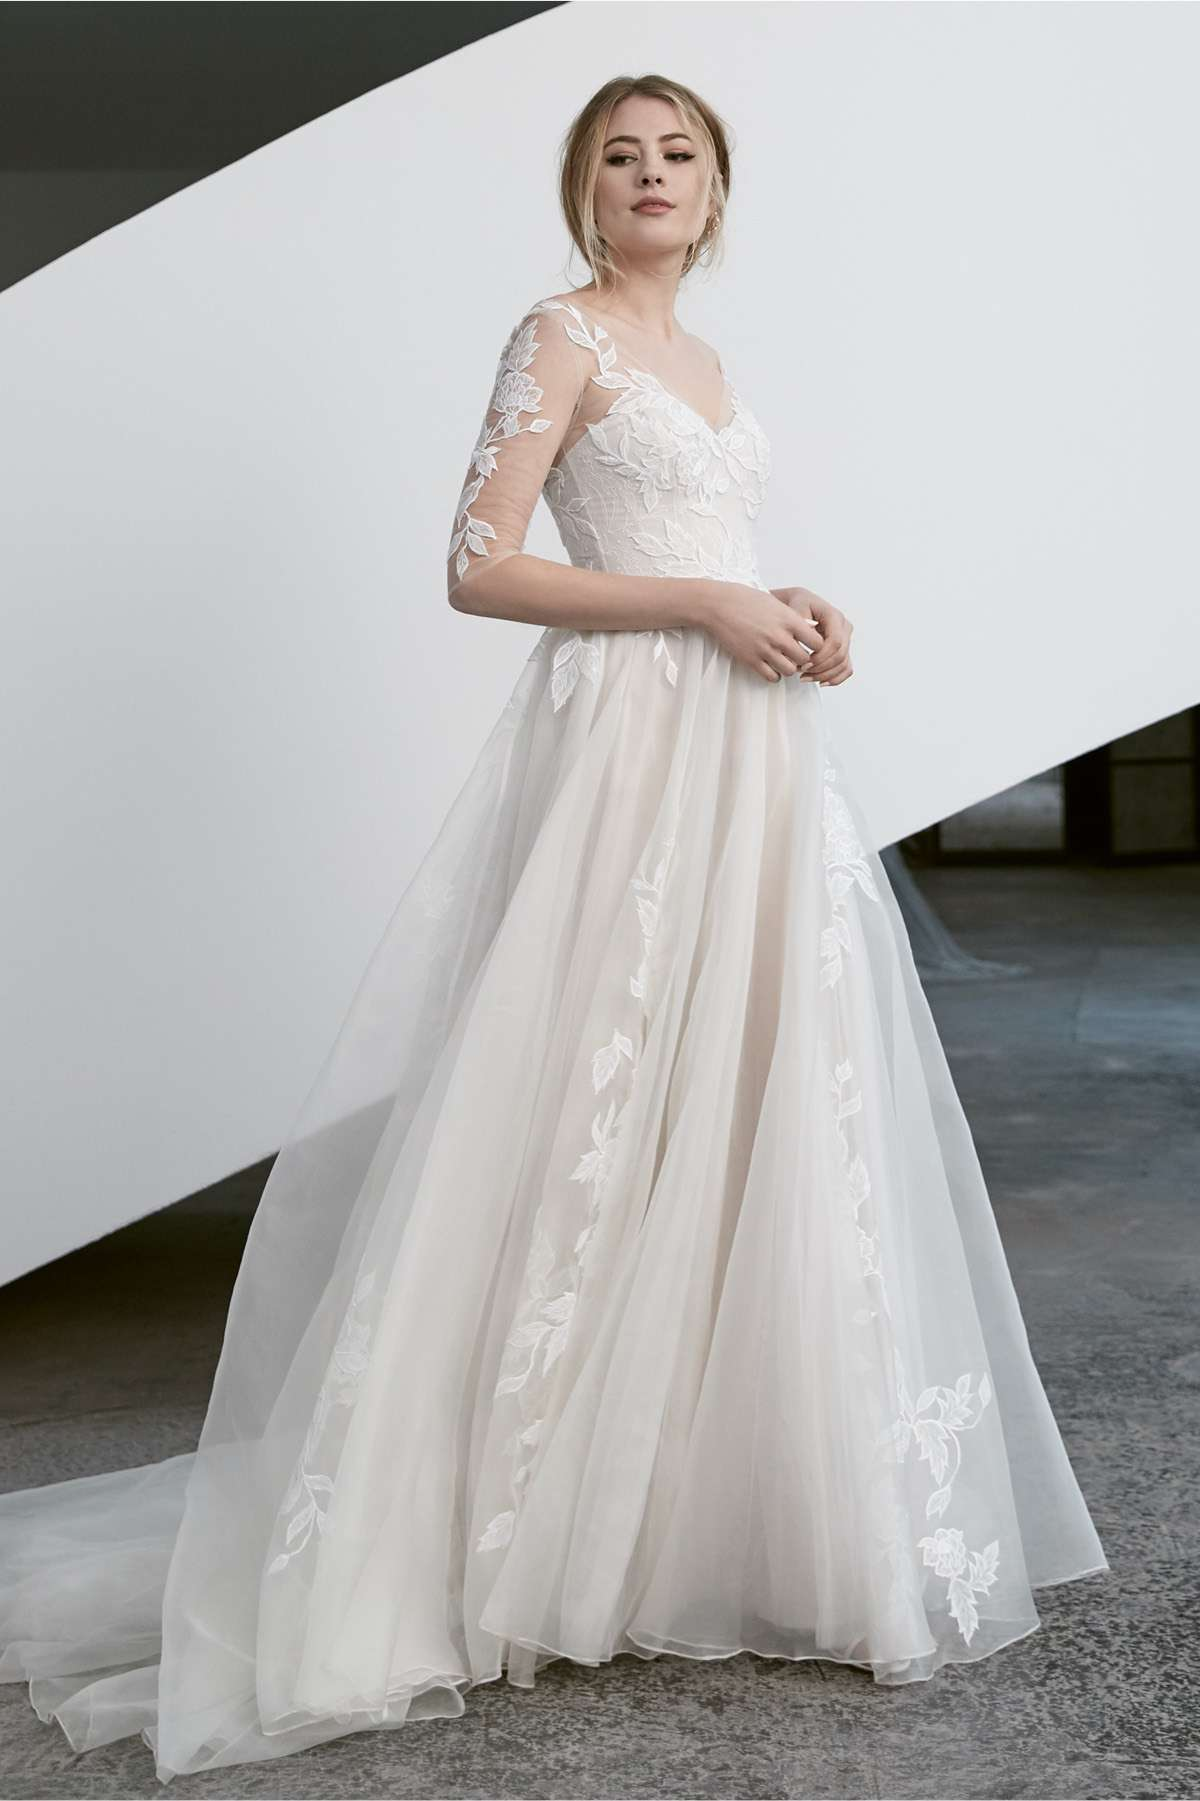 Model in ballgown with illusion bodice and sleeves with floral appliques